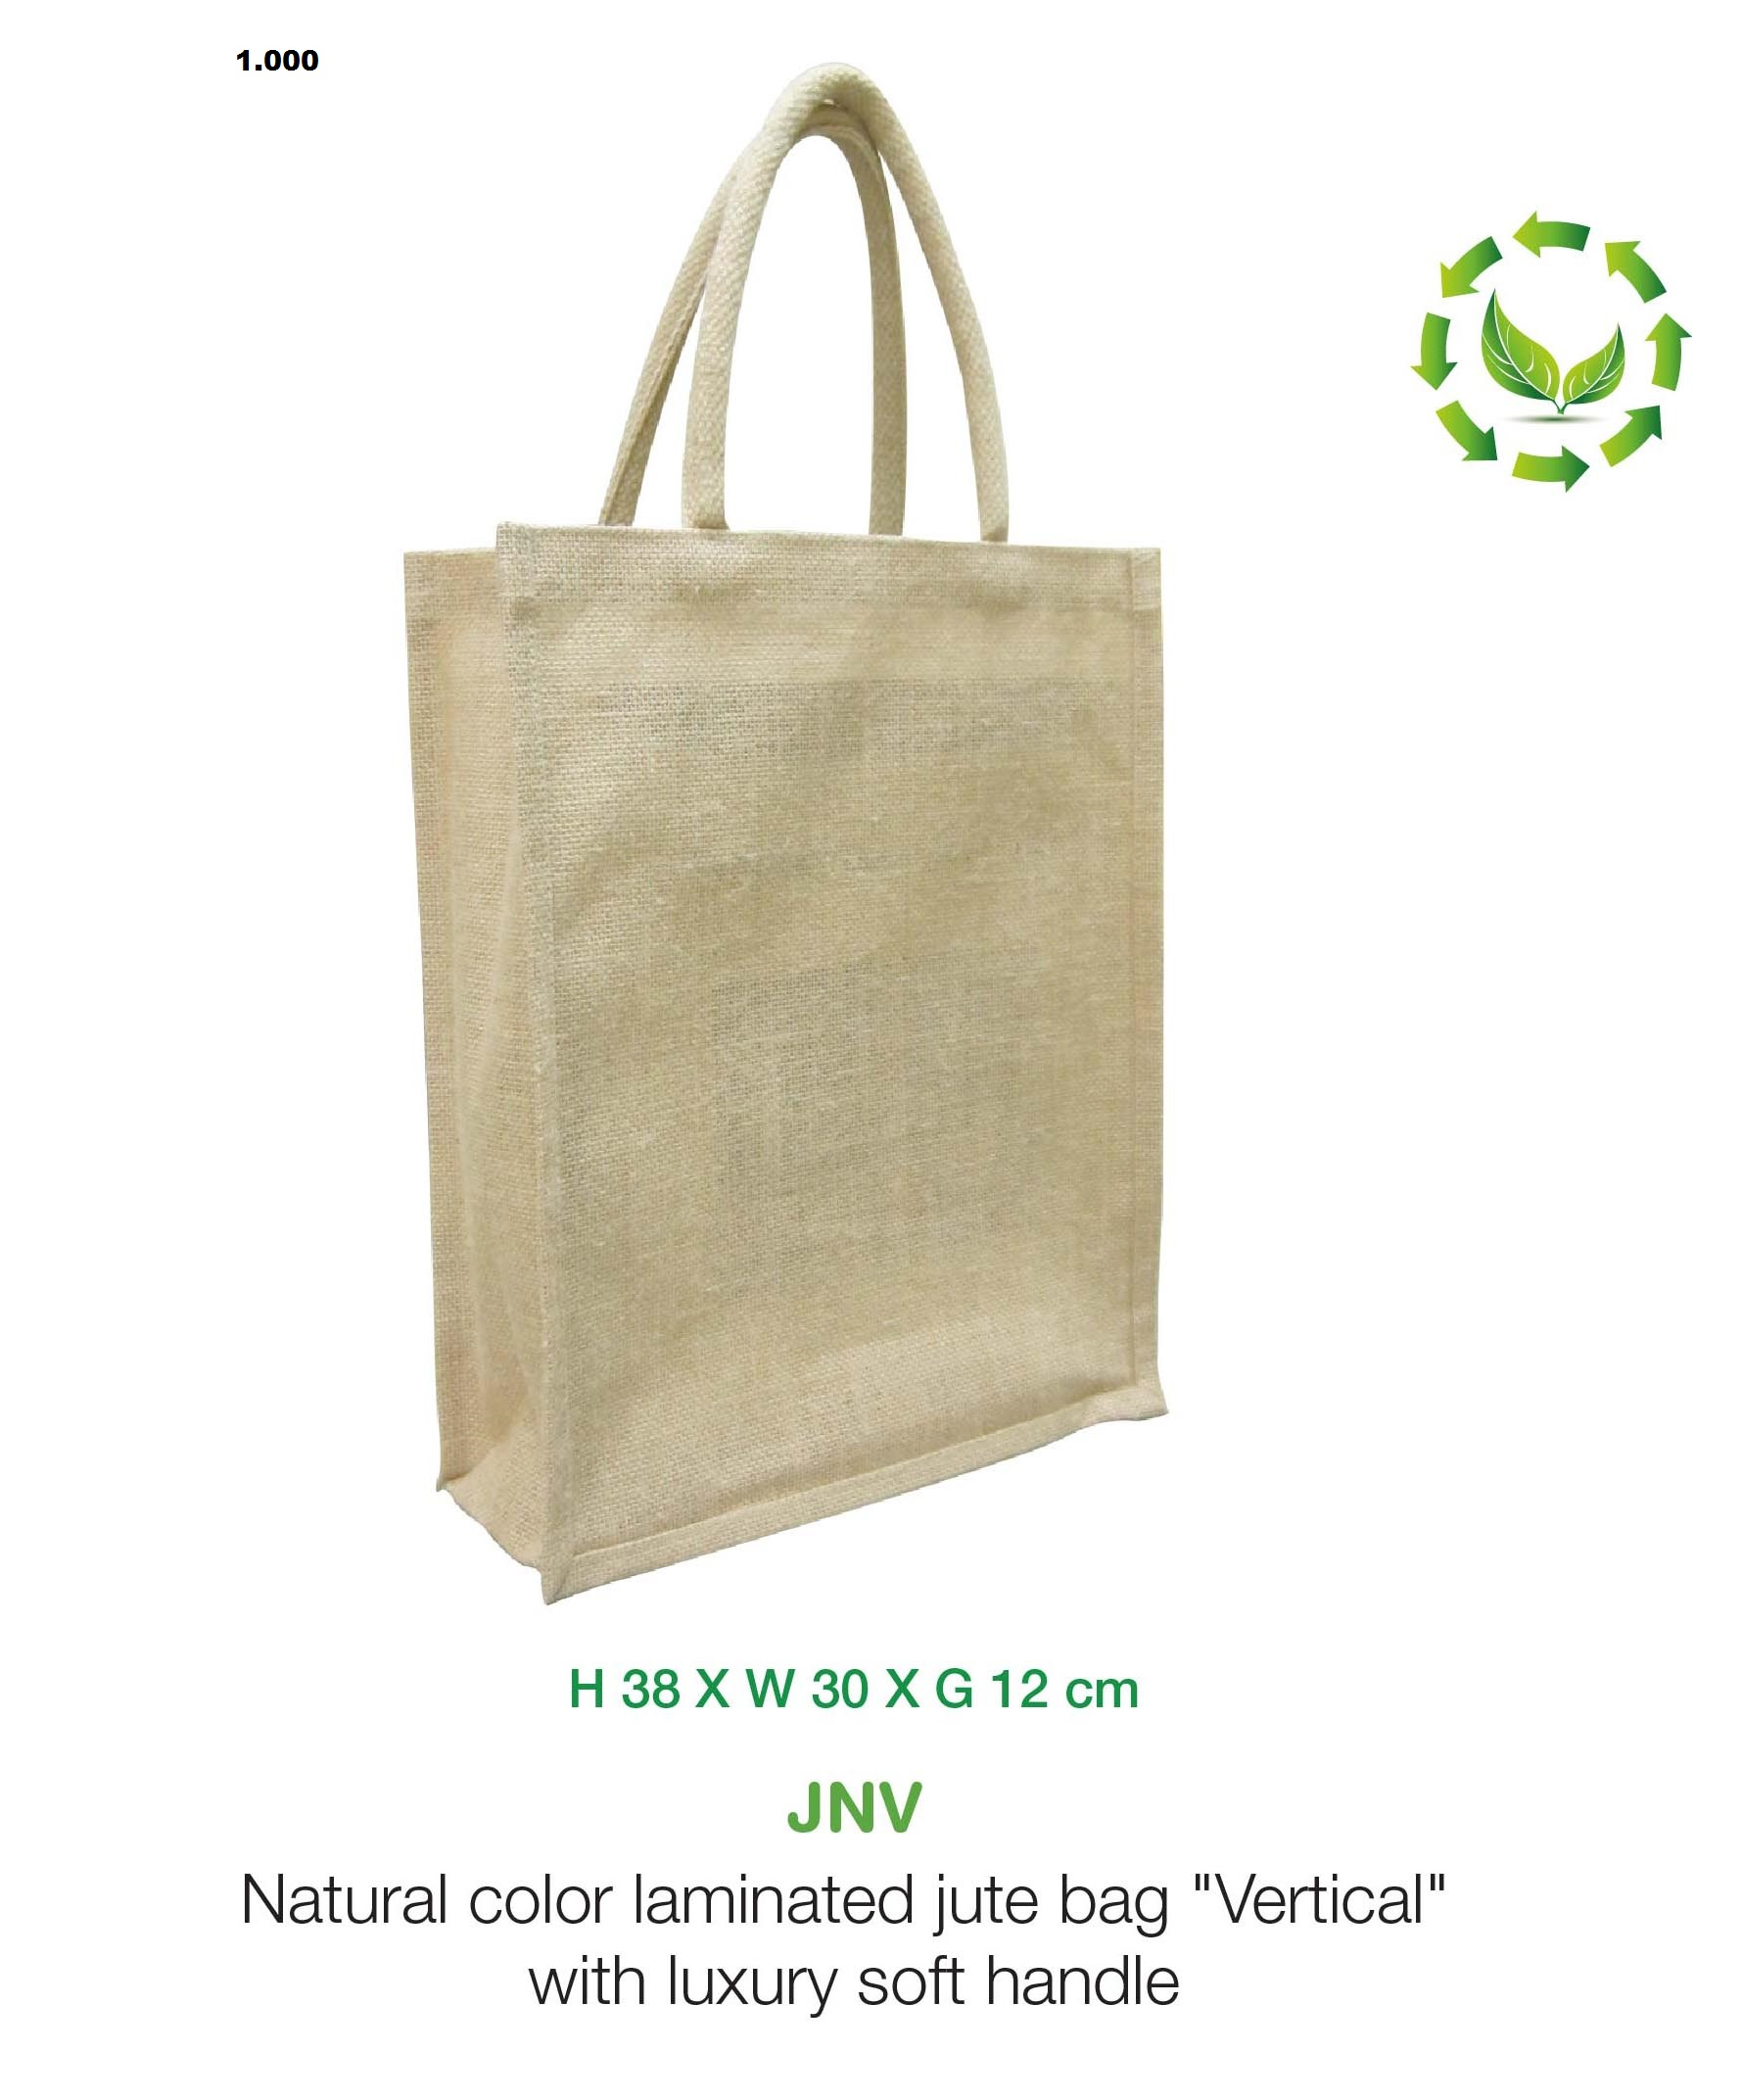 Vertical Jute Bag